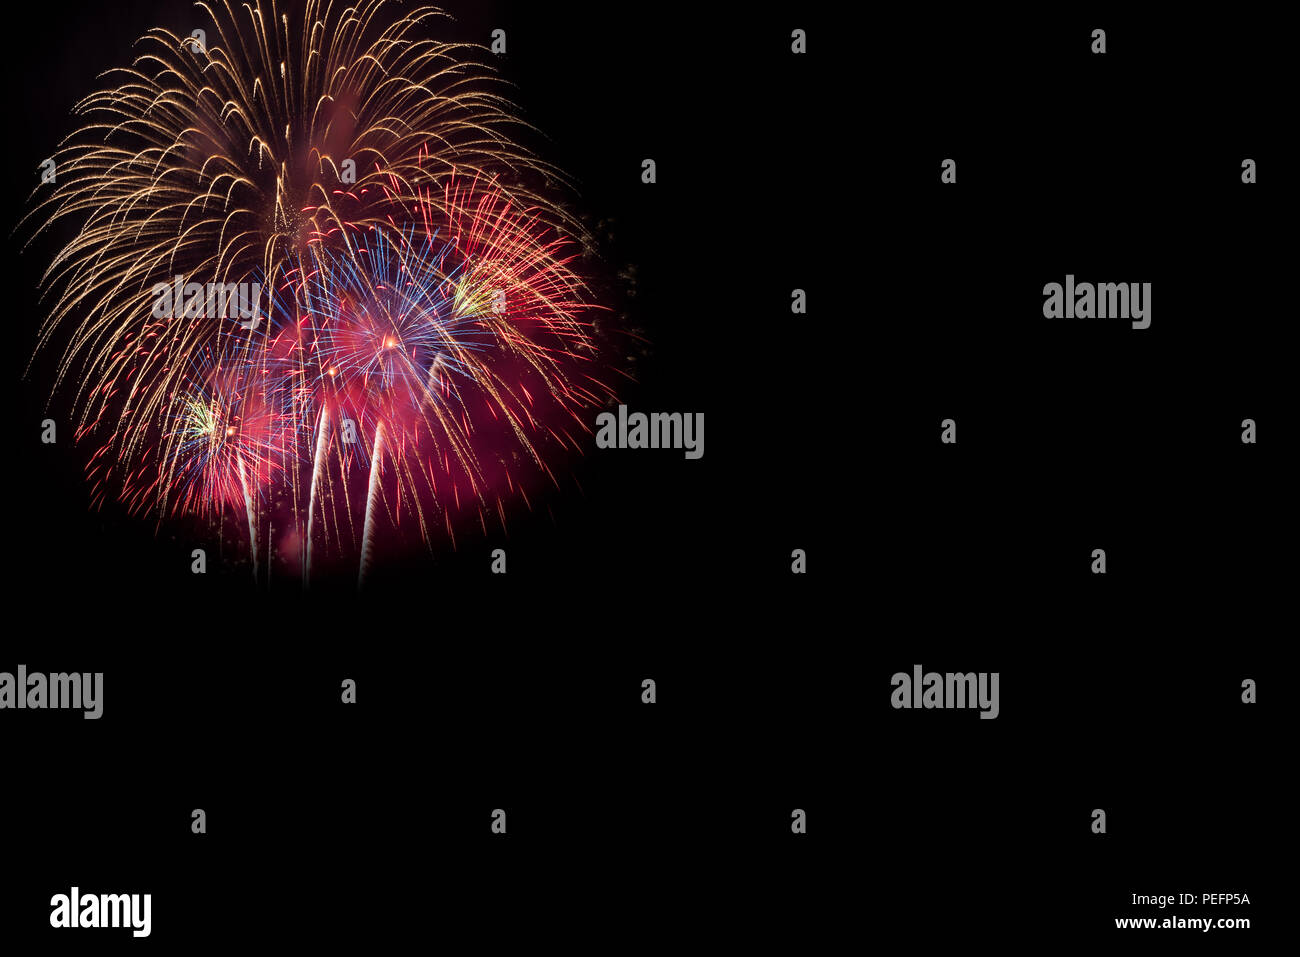 Rainbow Fireworks Celebration Colorful Abstract Image With: Abstract Beautiful Colorful Fireworks Display For